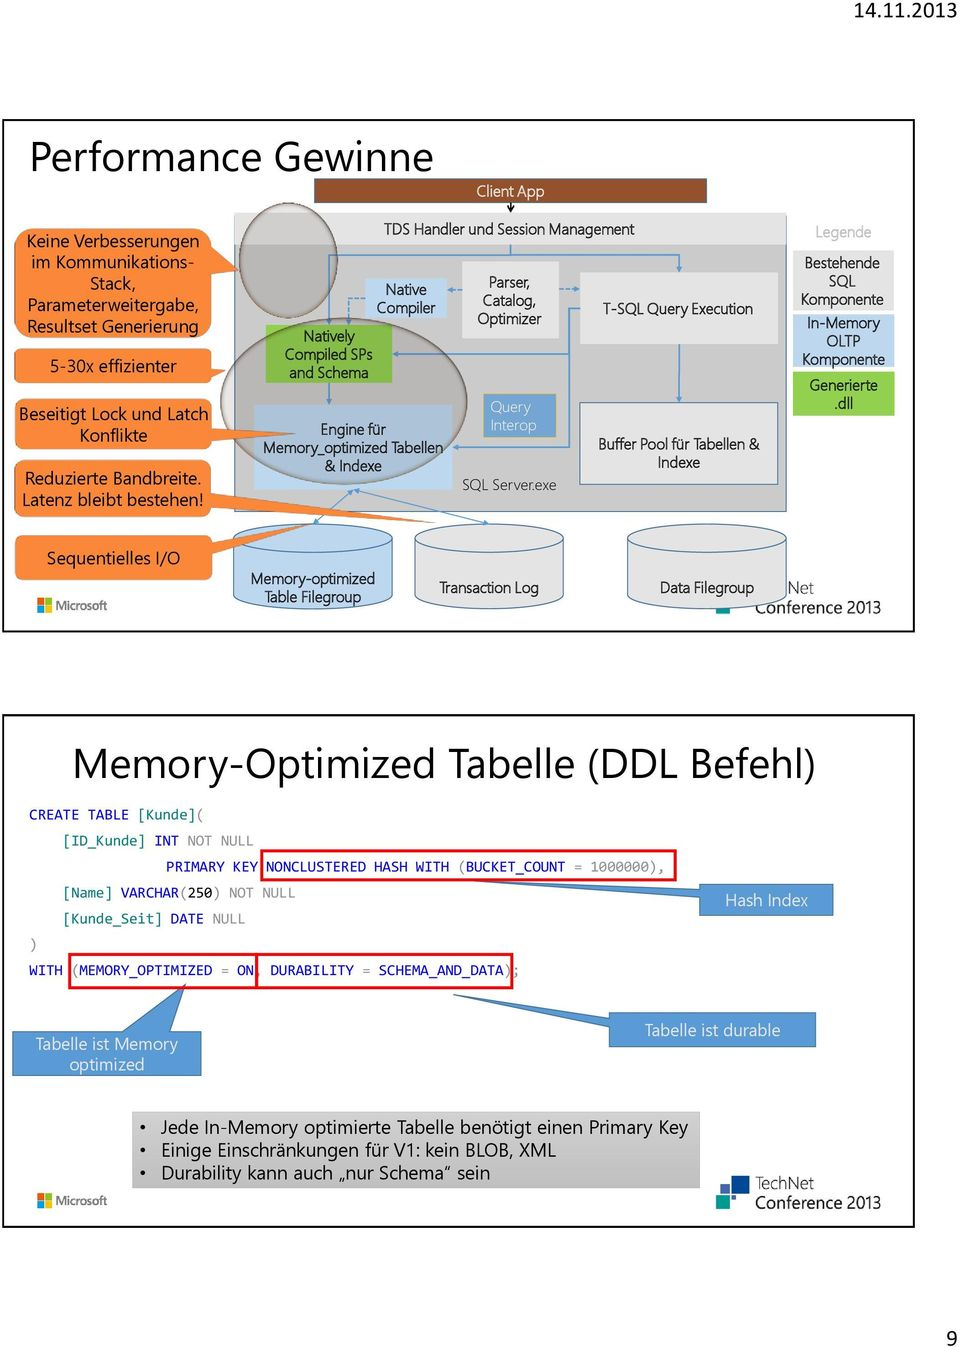 Natively Compiled SPs and Schema Engine für Memory_optimized Tabellen & Indexe TDS Handler und Session Management Native Compiler Parser, Catalog, Optimizer Query Interop SQL Server.